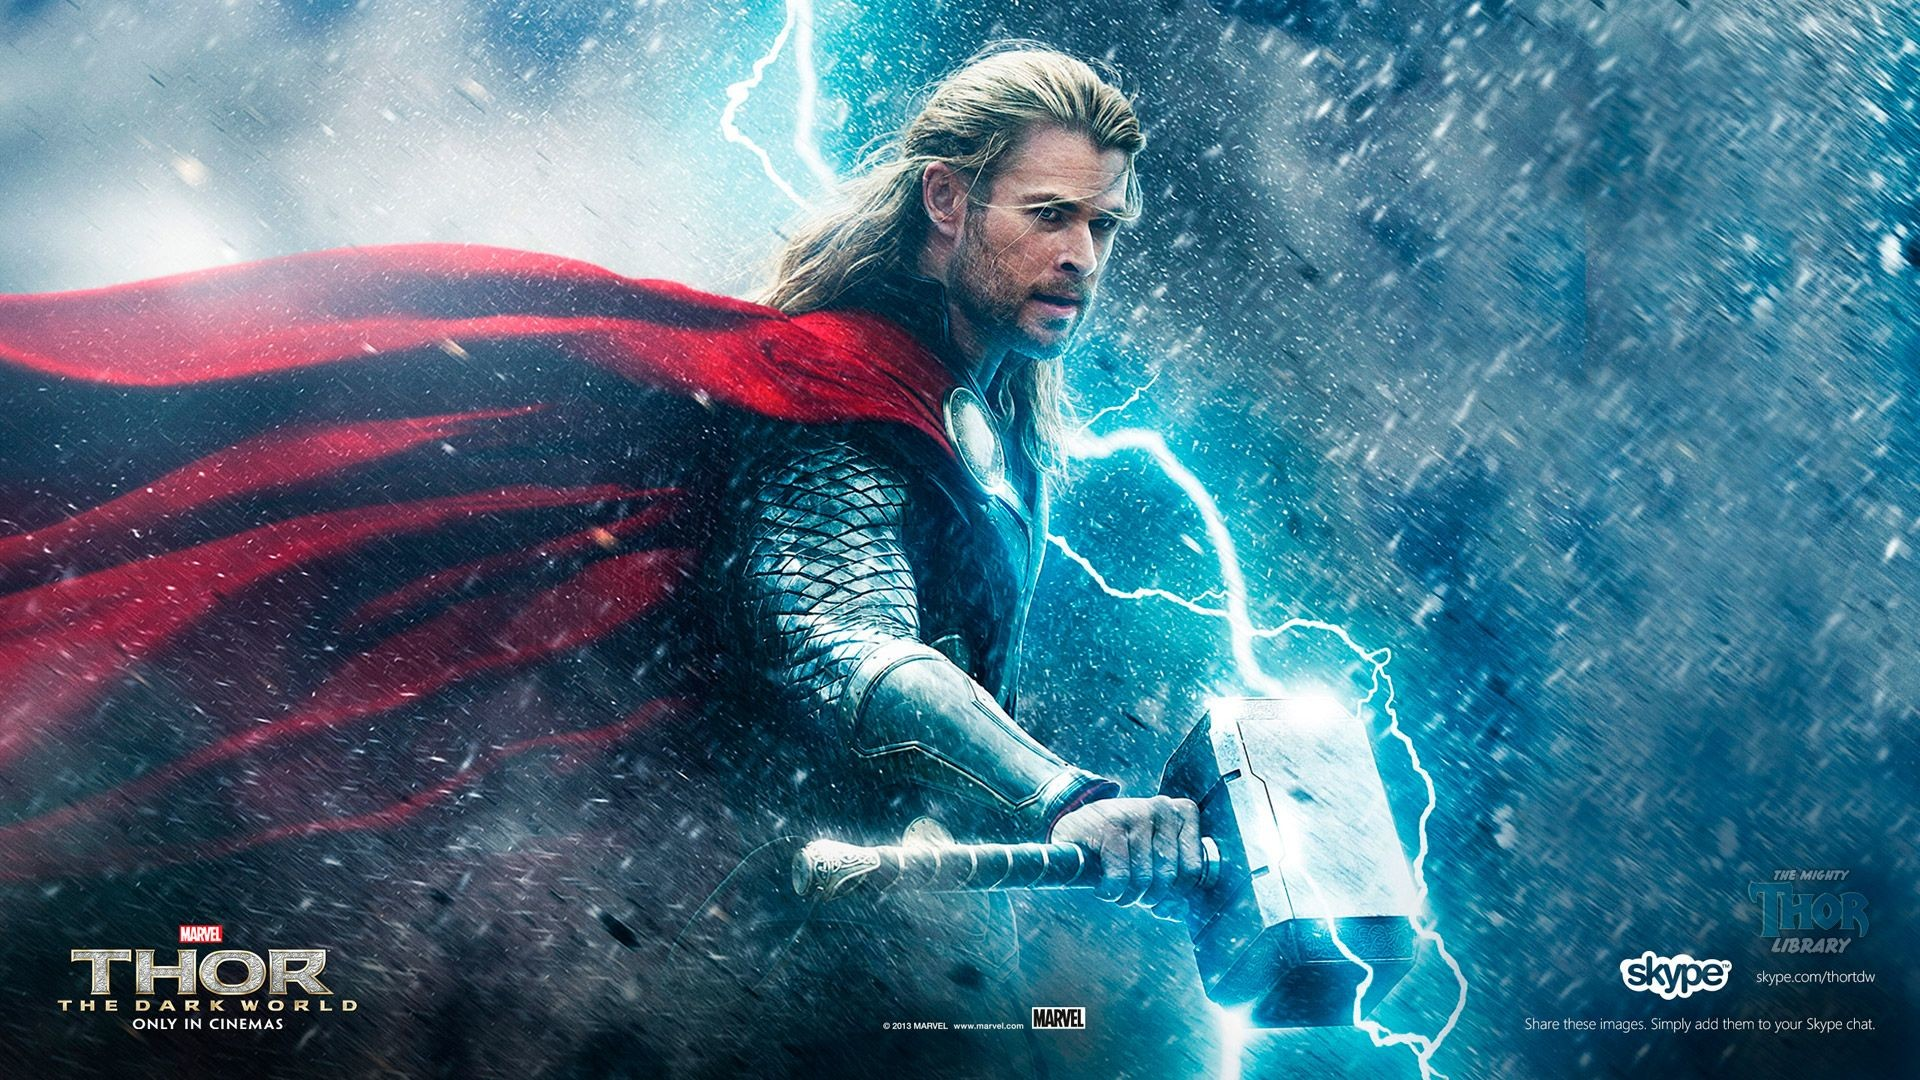 Res: 1920x1080, Thor Wallpapers HD Wallpaper 1600×900 Thor HD Wallpapers (35 Wallpapers) |  Adorable